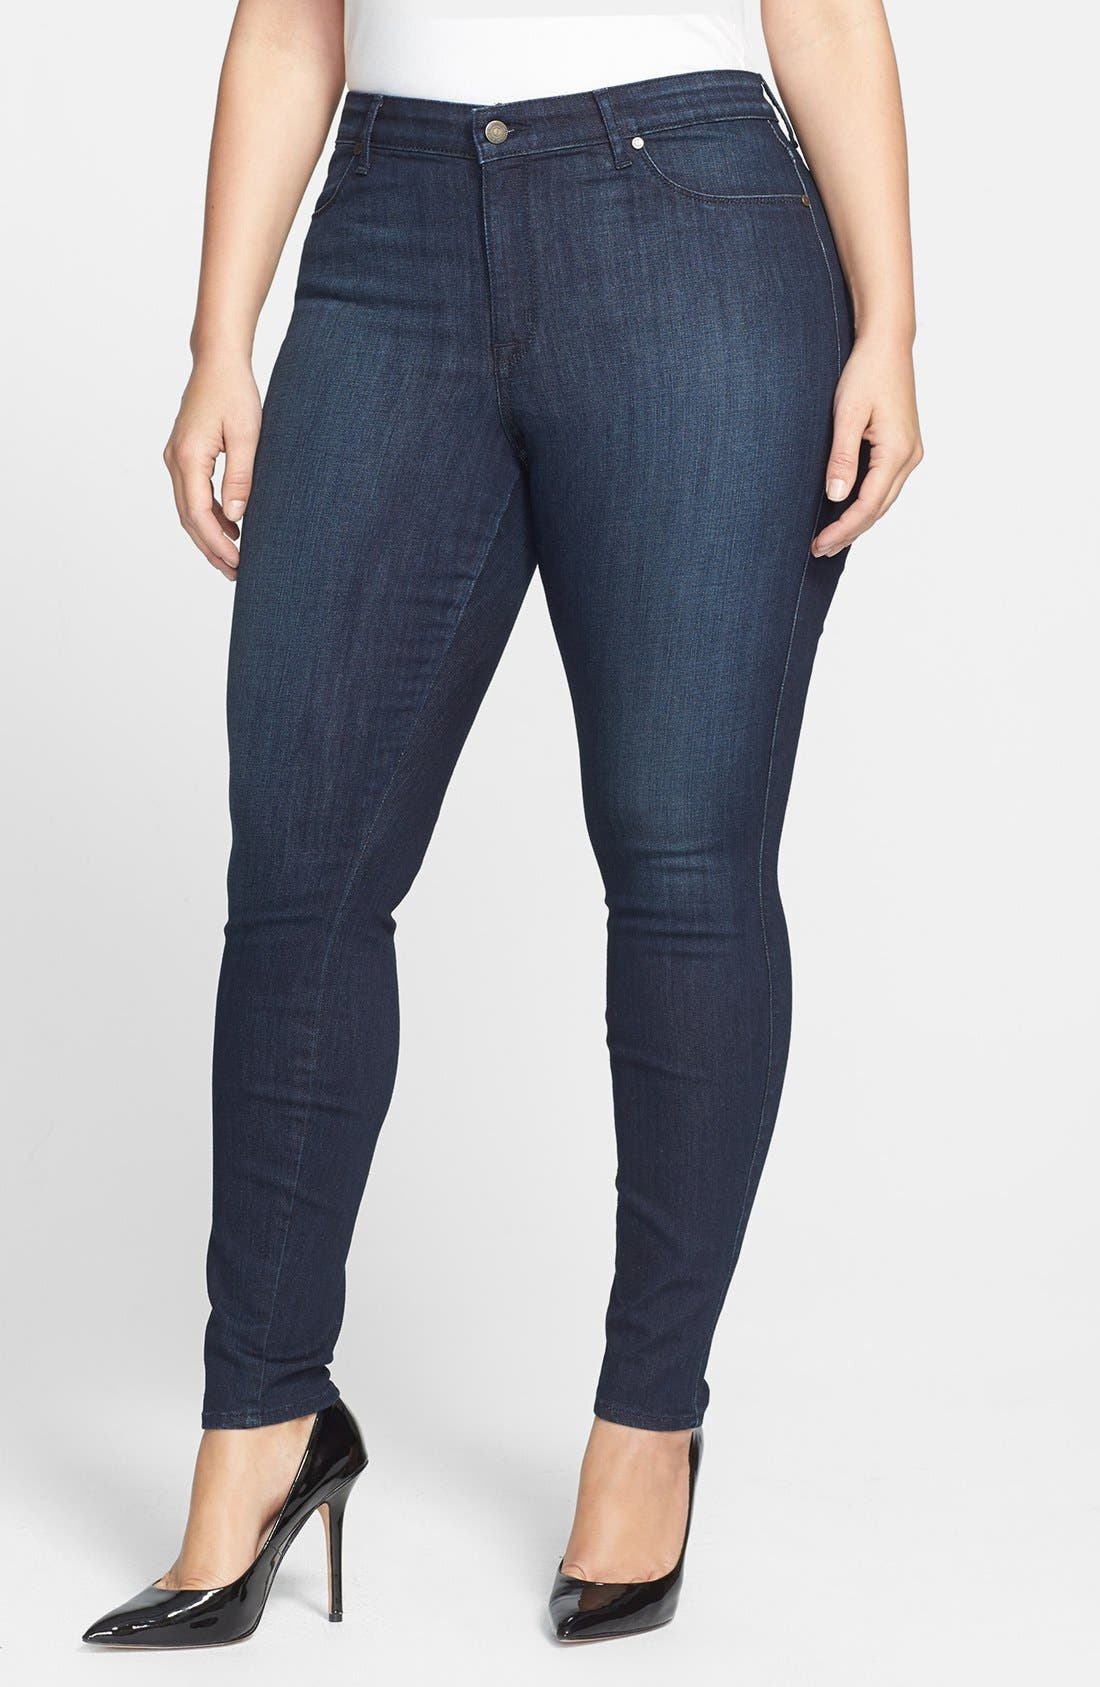 Alternate Image 1 Selected - CJ by Cookie Johnson 'Joy' Legging Style Stretch Jeans (Kahana) (Plus Size)